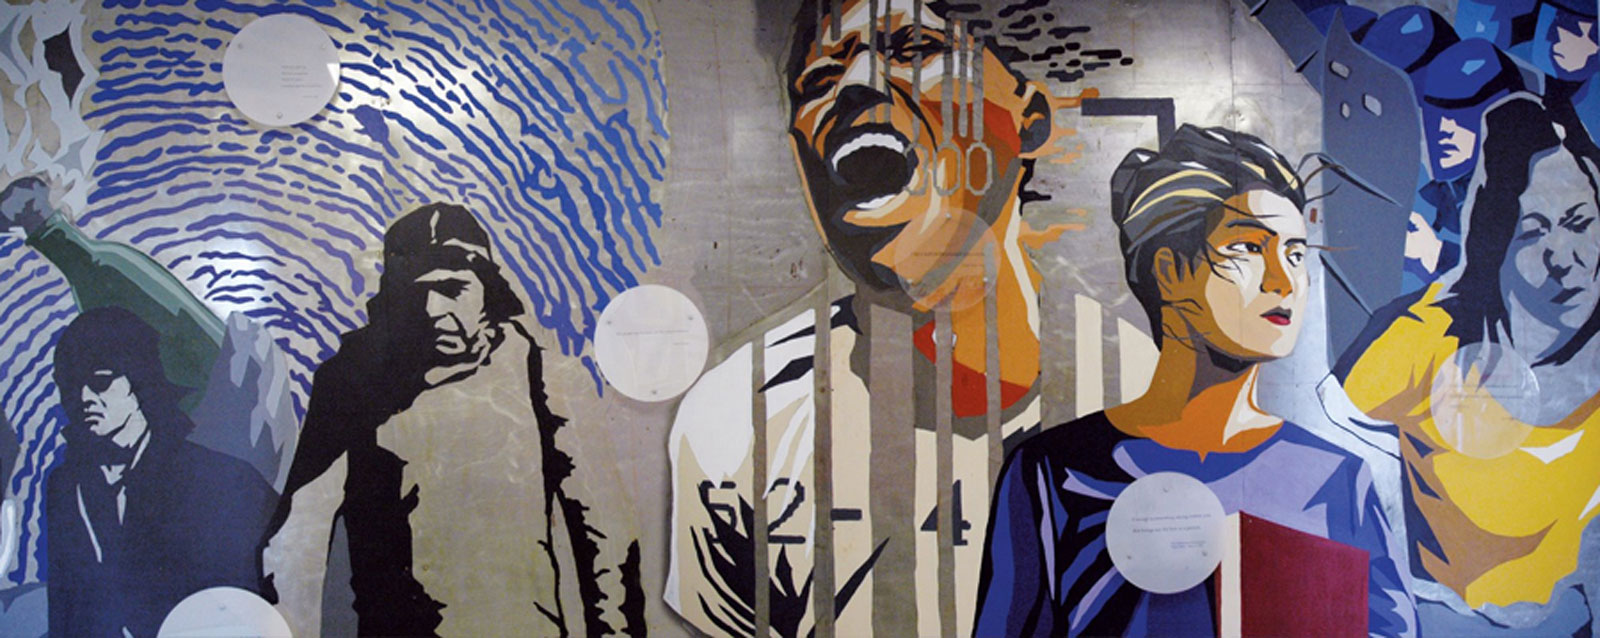 """The mural """"Education Through Struggle,"""" which is outside the Asian American Studies Center. Alumnus Darryl Mar and UCLA students painted it in 1995."""